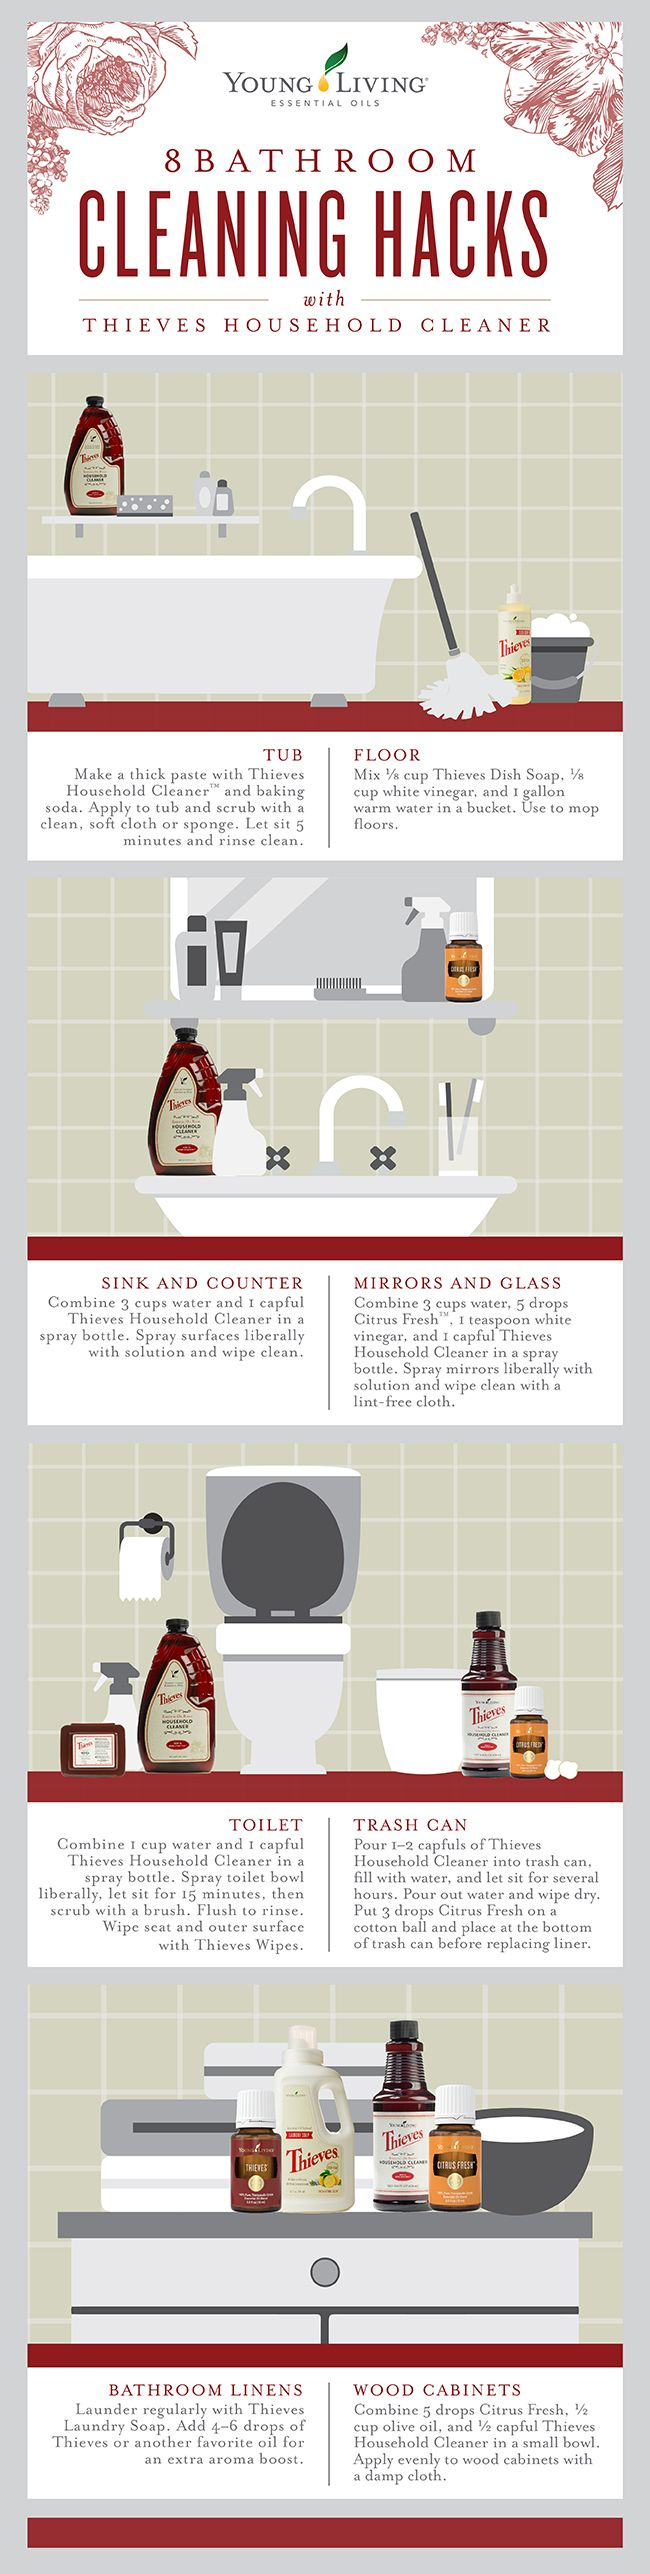 Young Living Essential Oils: Clean Home